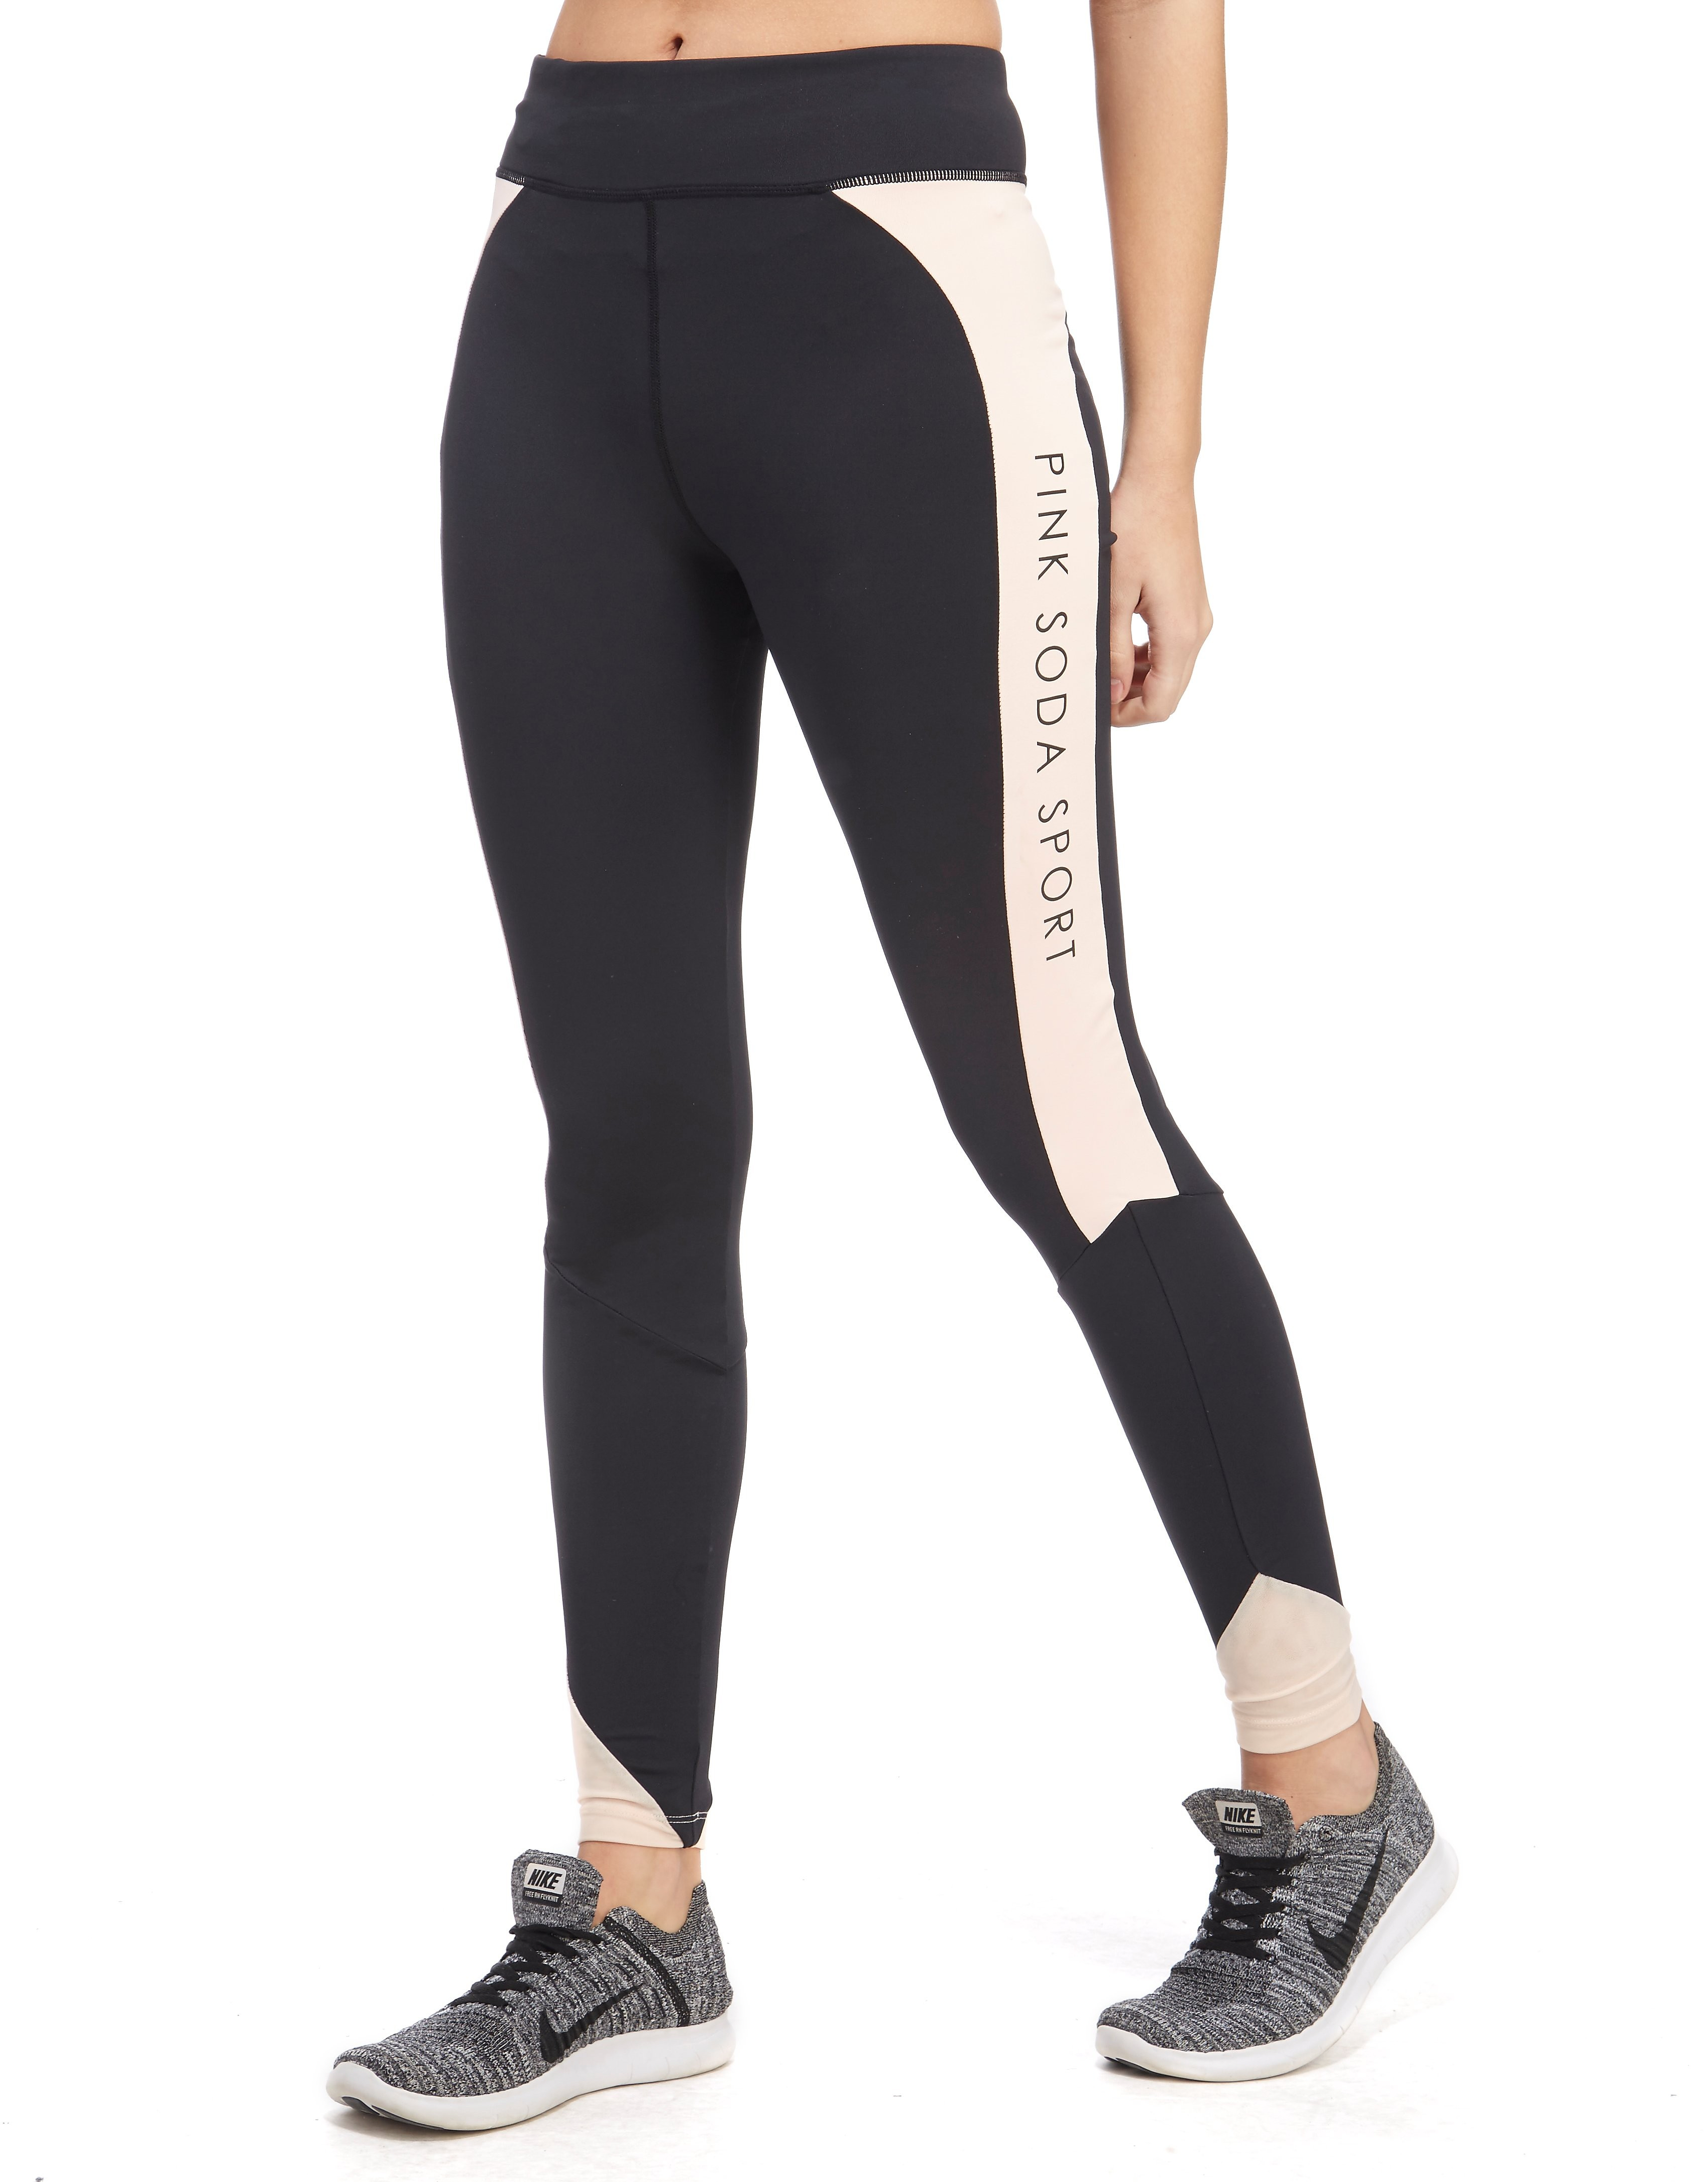 Pink Soda Sport Mesh Angle Fitness Tights